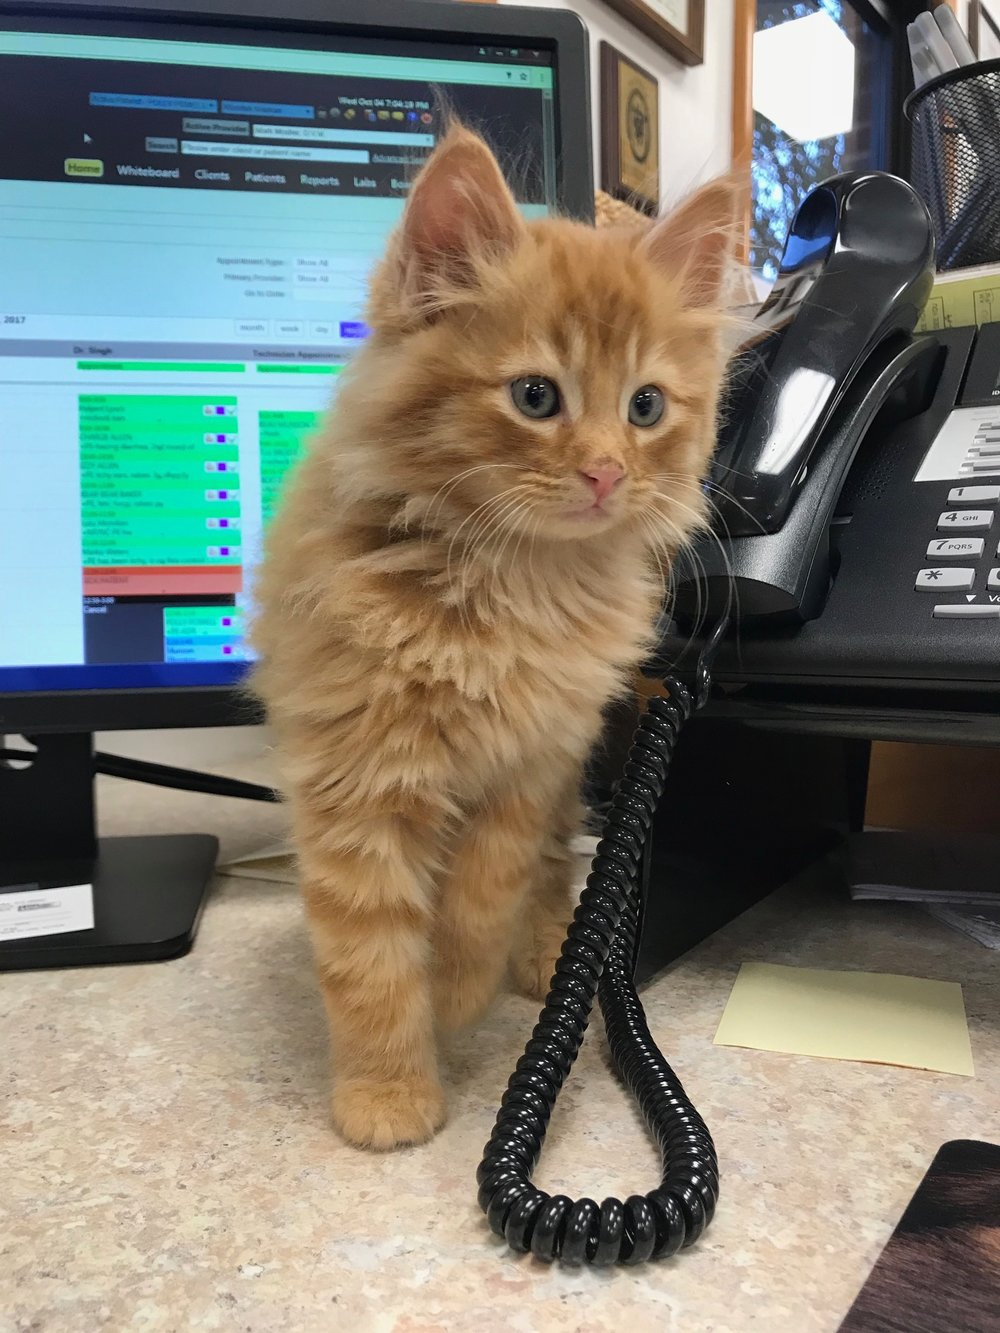 orange kitten by phone.jpg